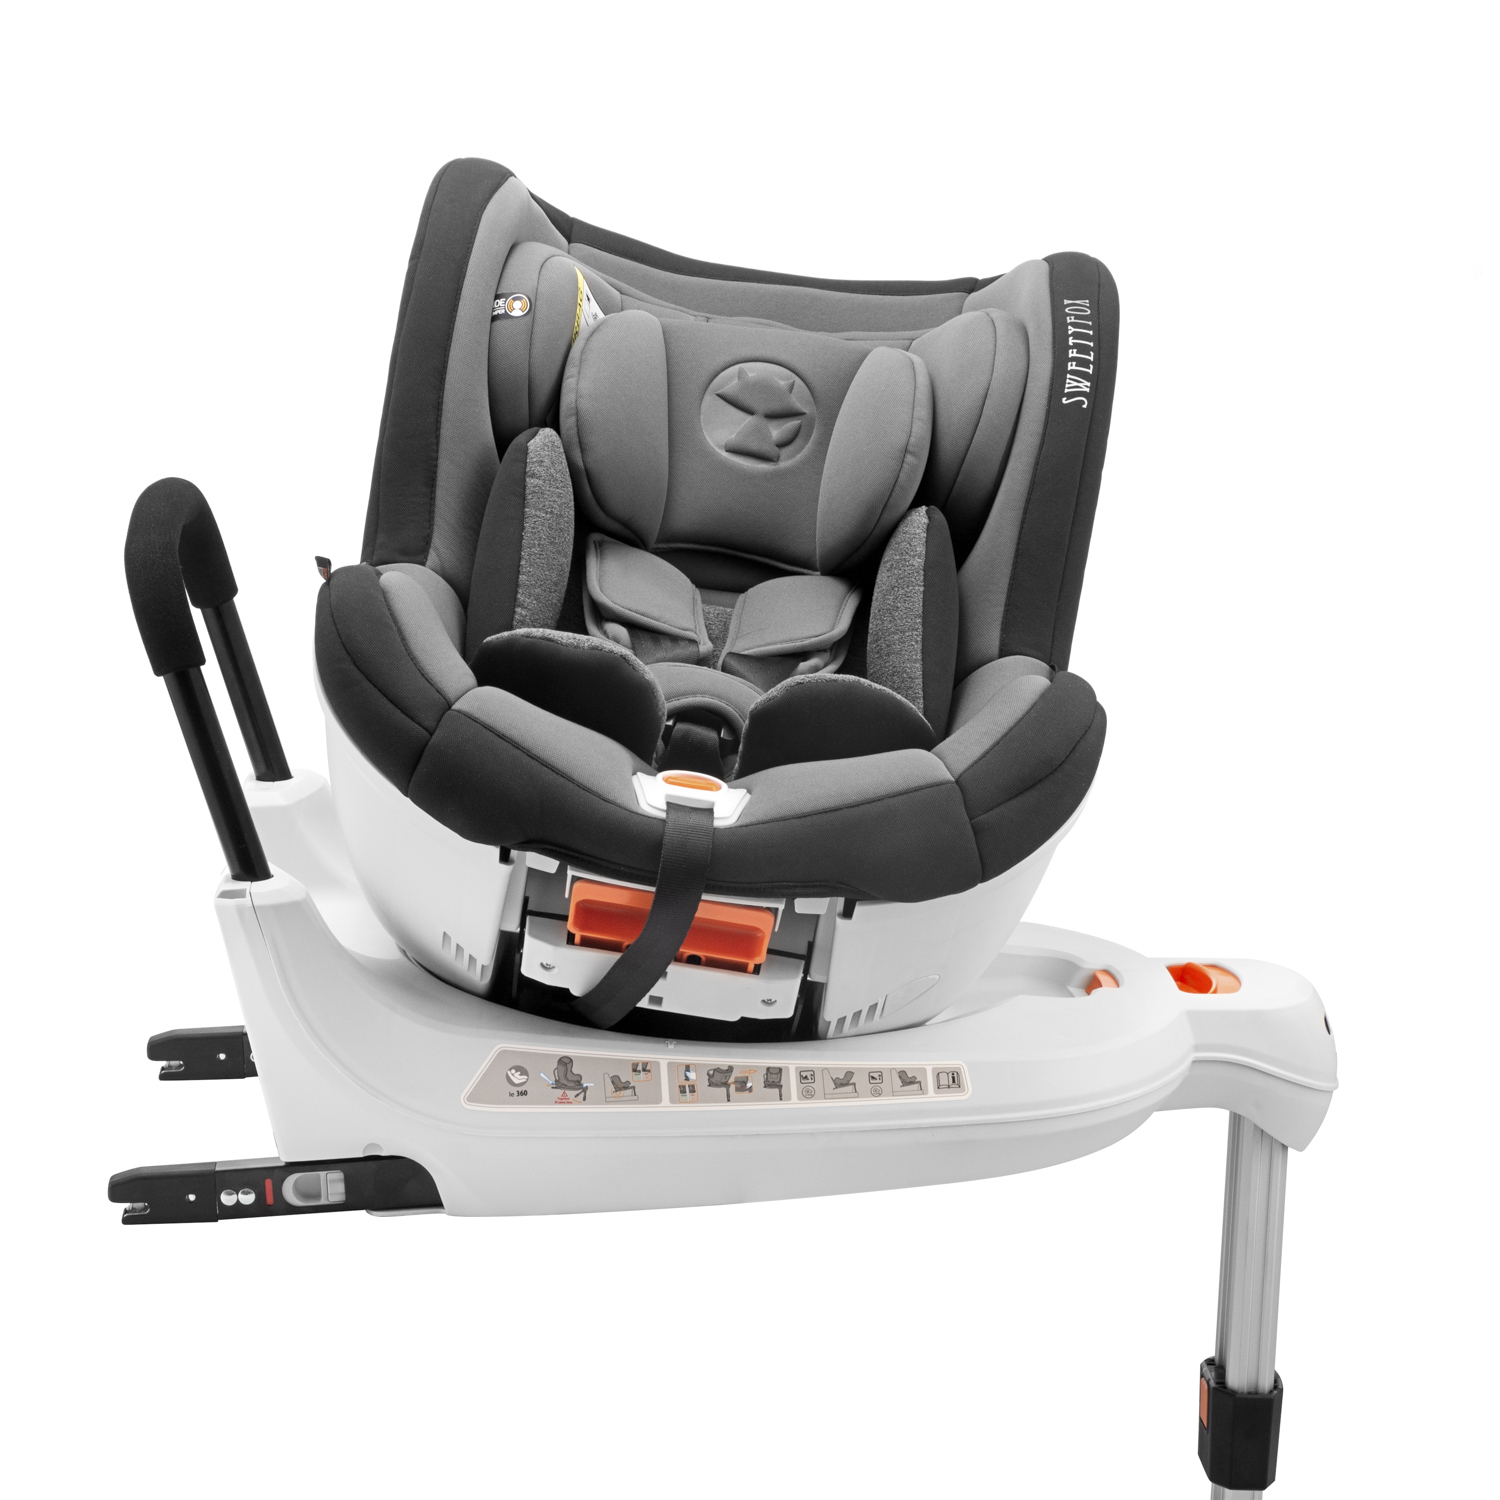 lettstudio_packshot_white_background_carseat4.jpg